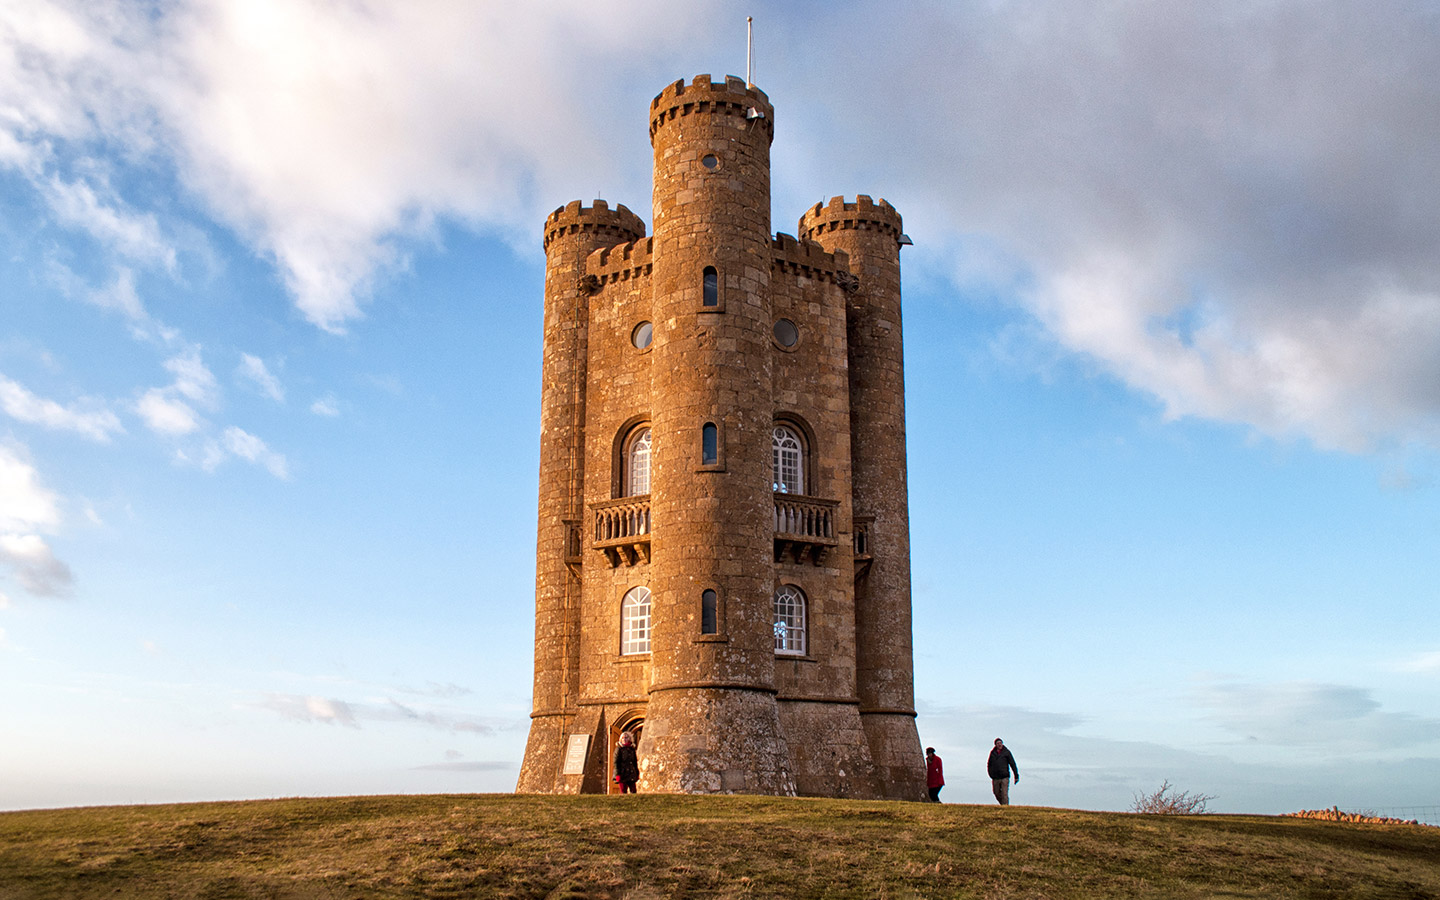 The Broadway Tower at sunset